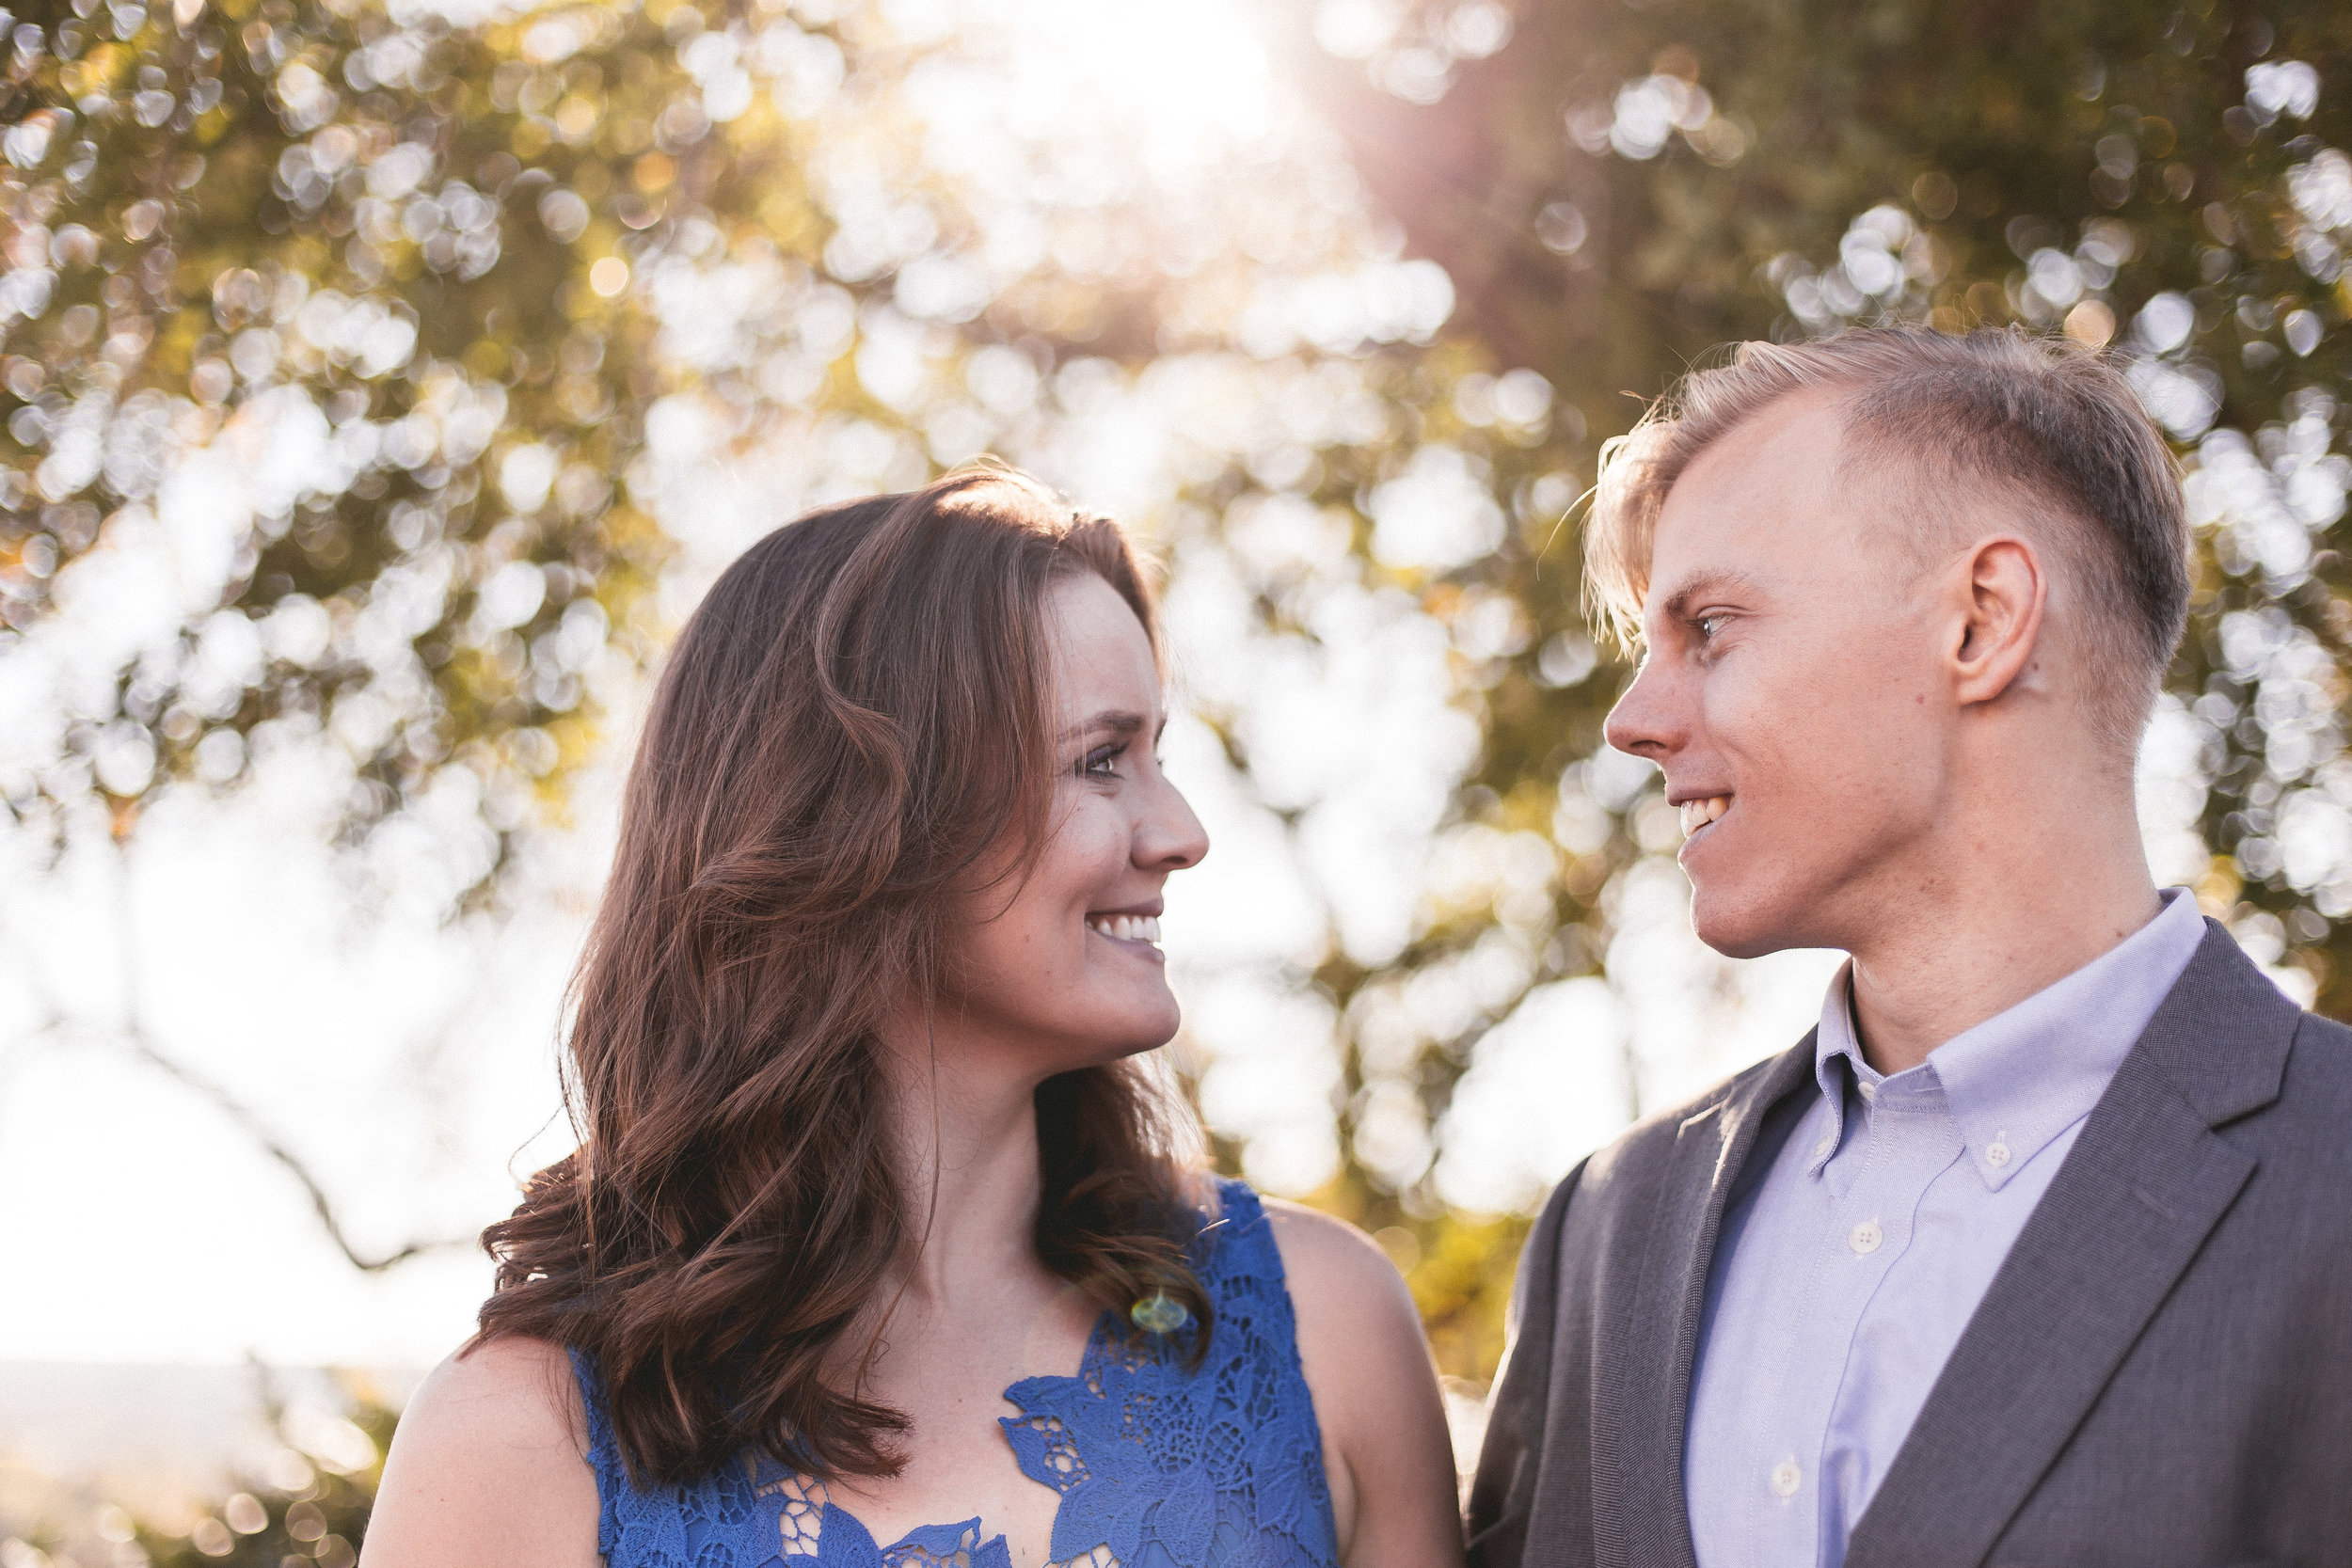 Lindsey & Bert Engagement Shoot 11.5.16-77.jpg